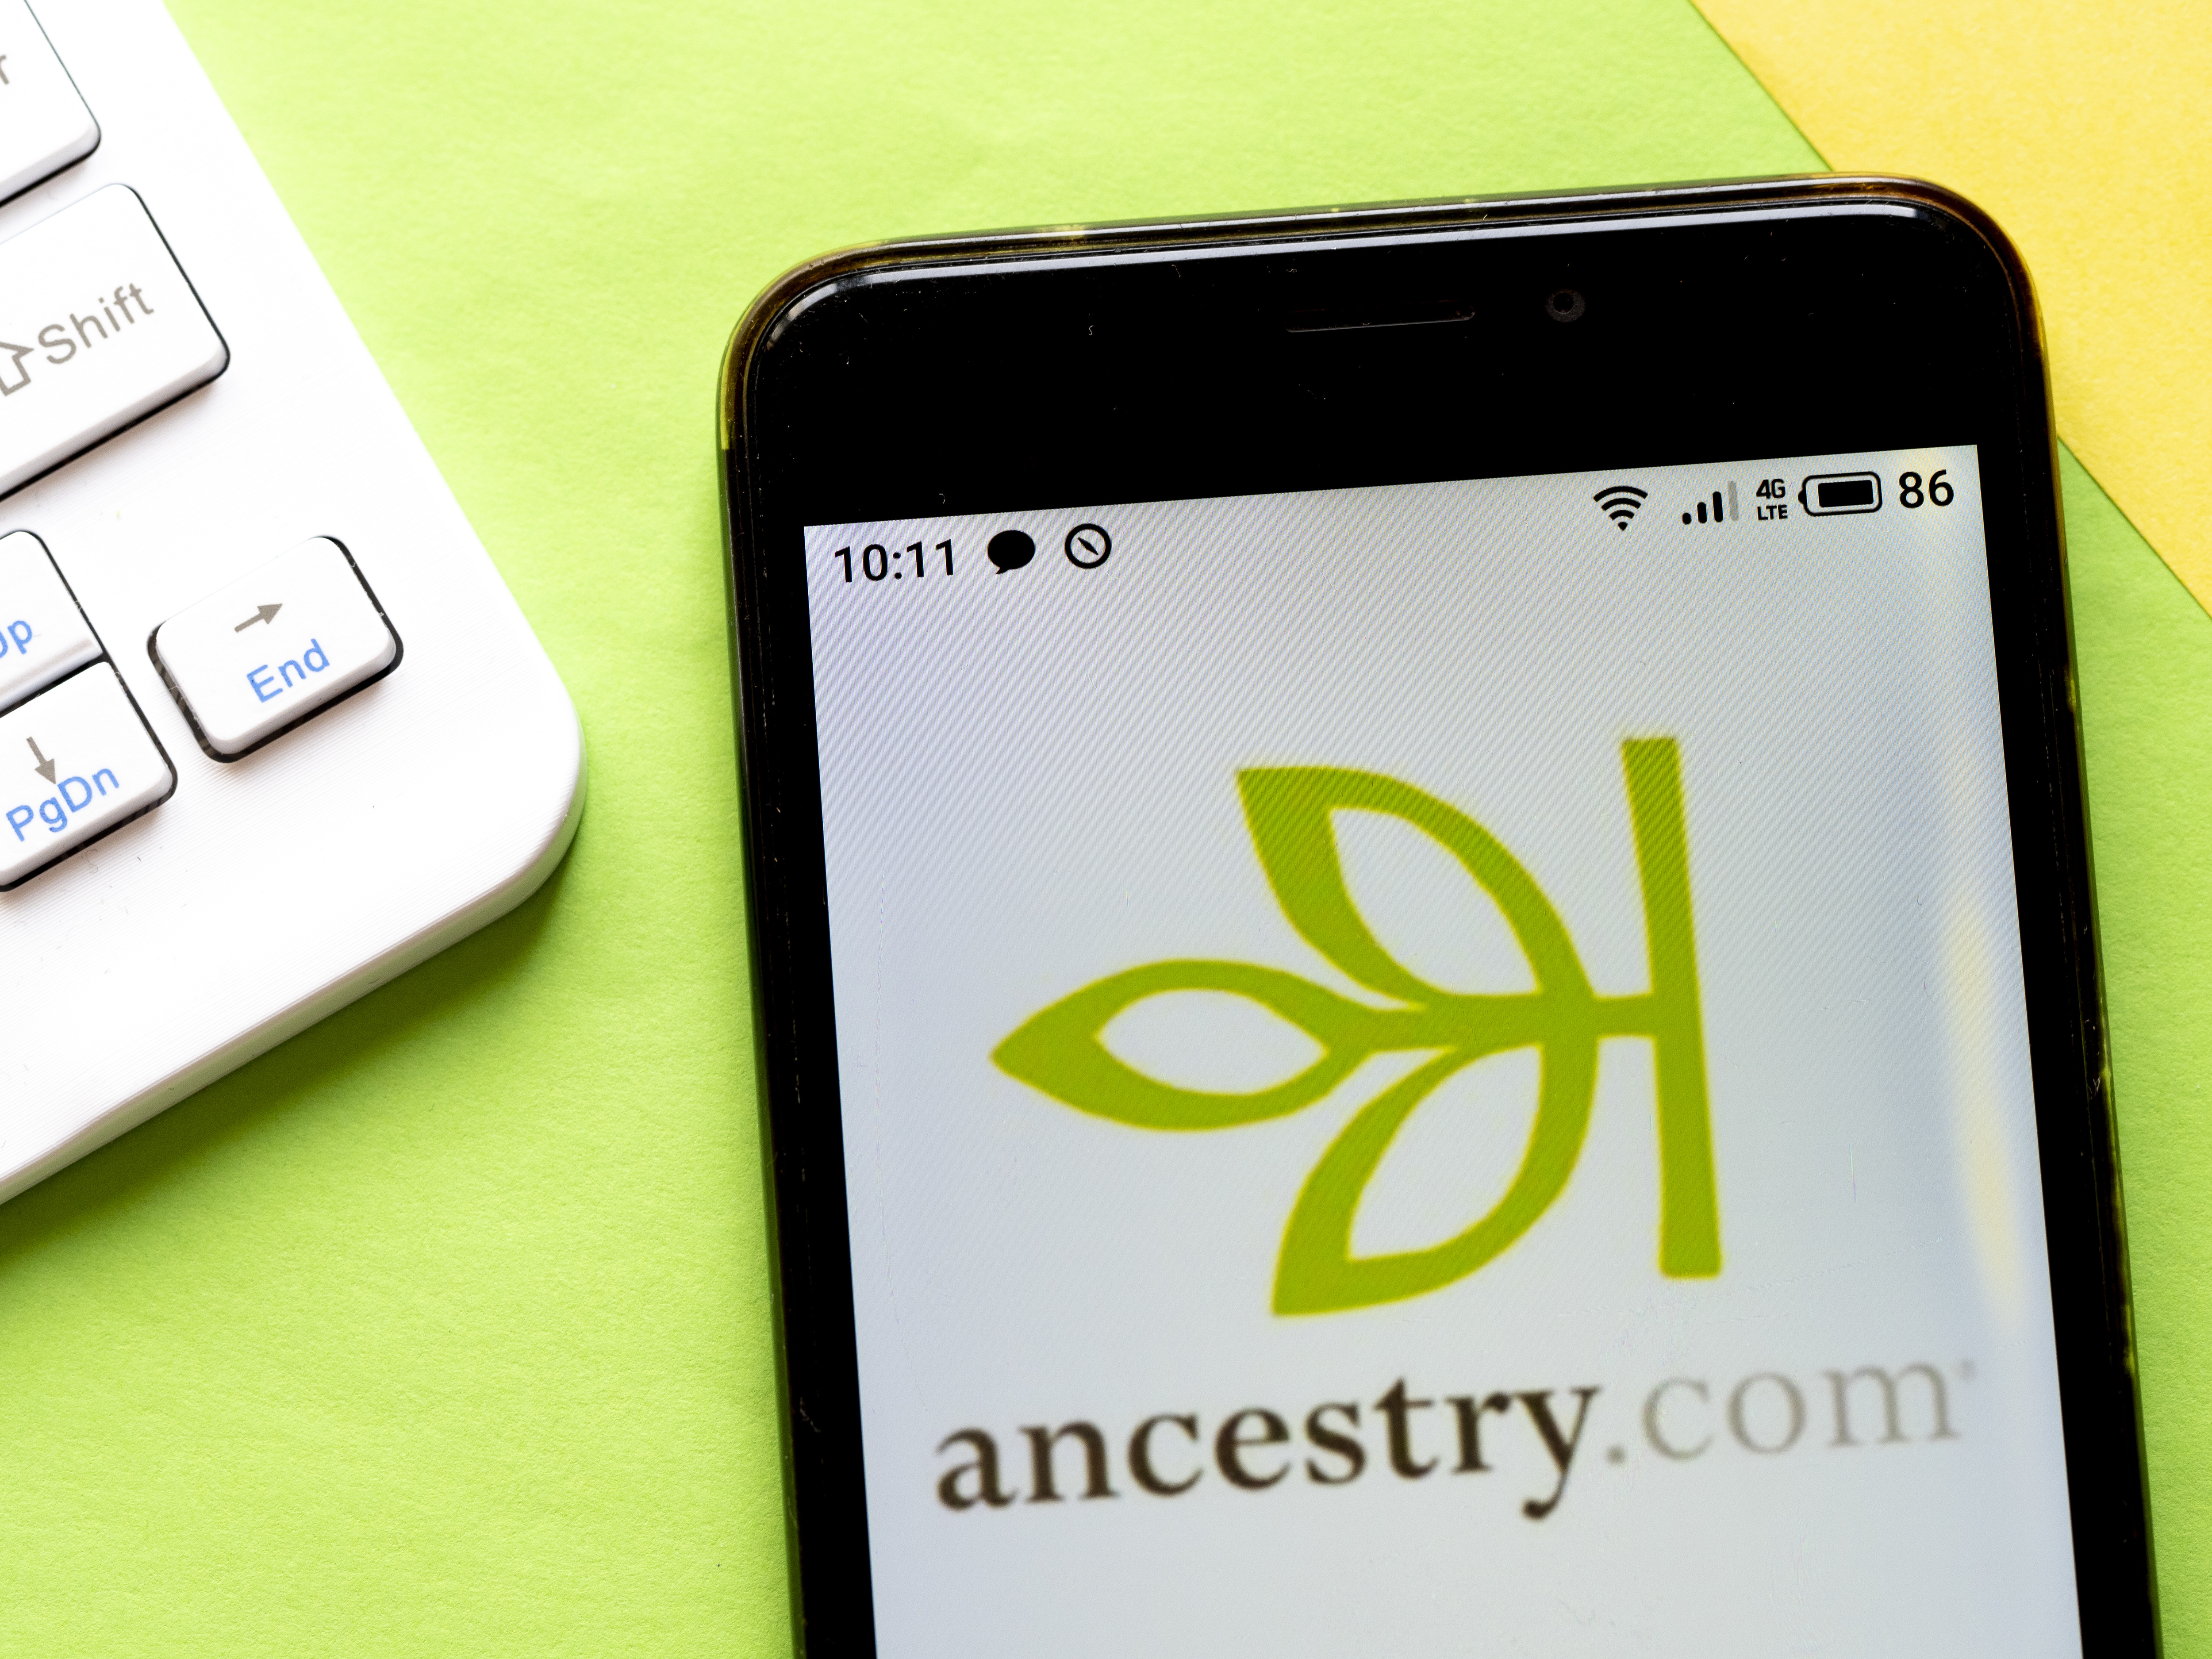 Hey, soldiers and spies -- think twice about that home genetic ancestry evaluation thumbnail